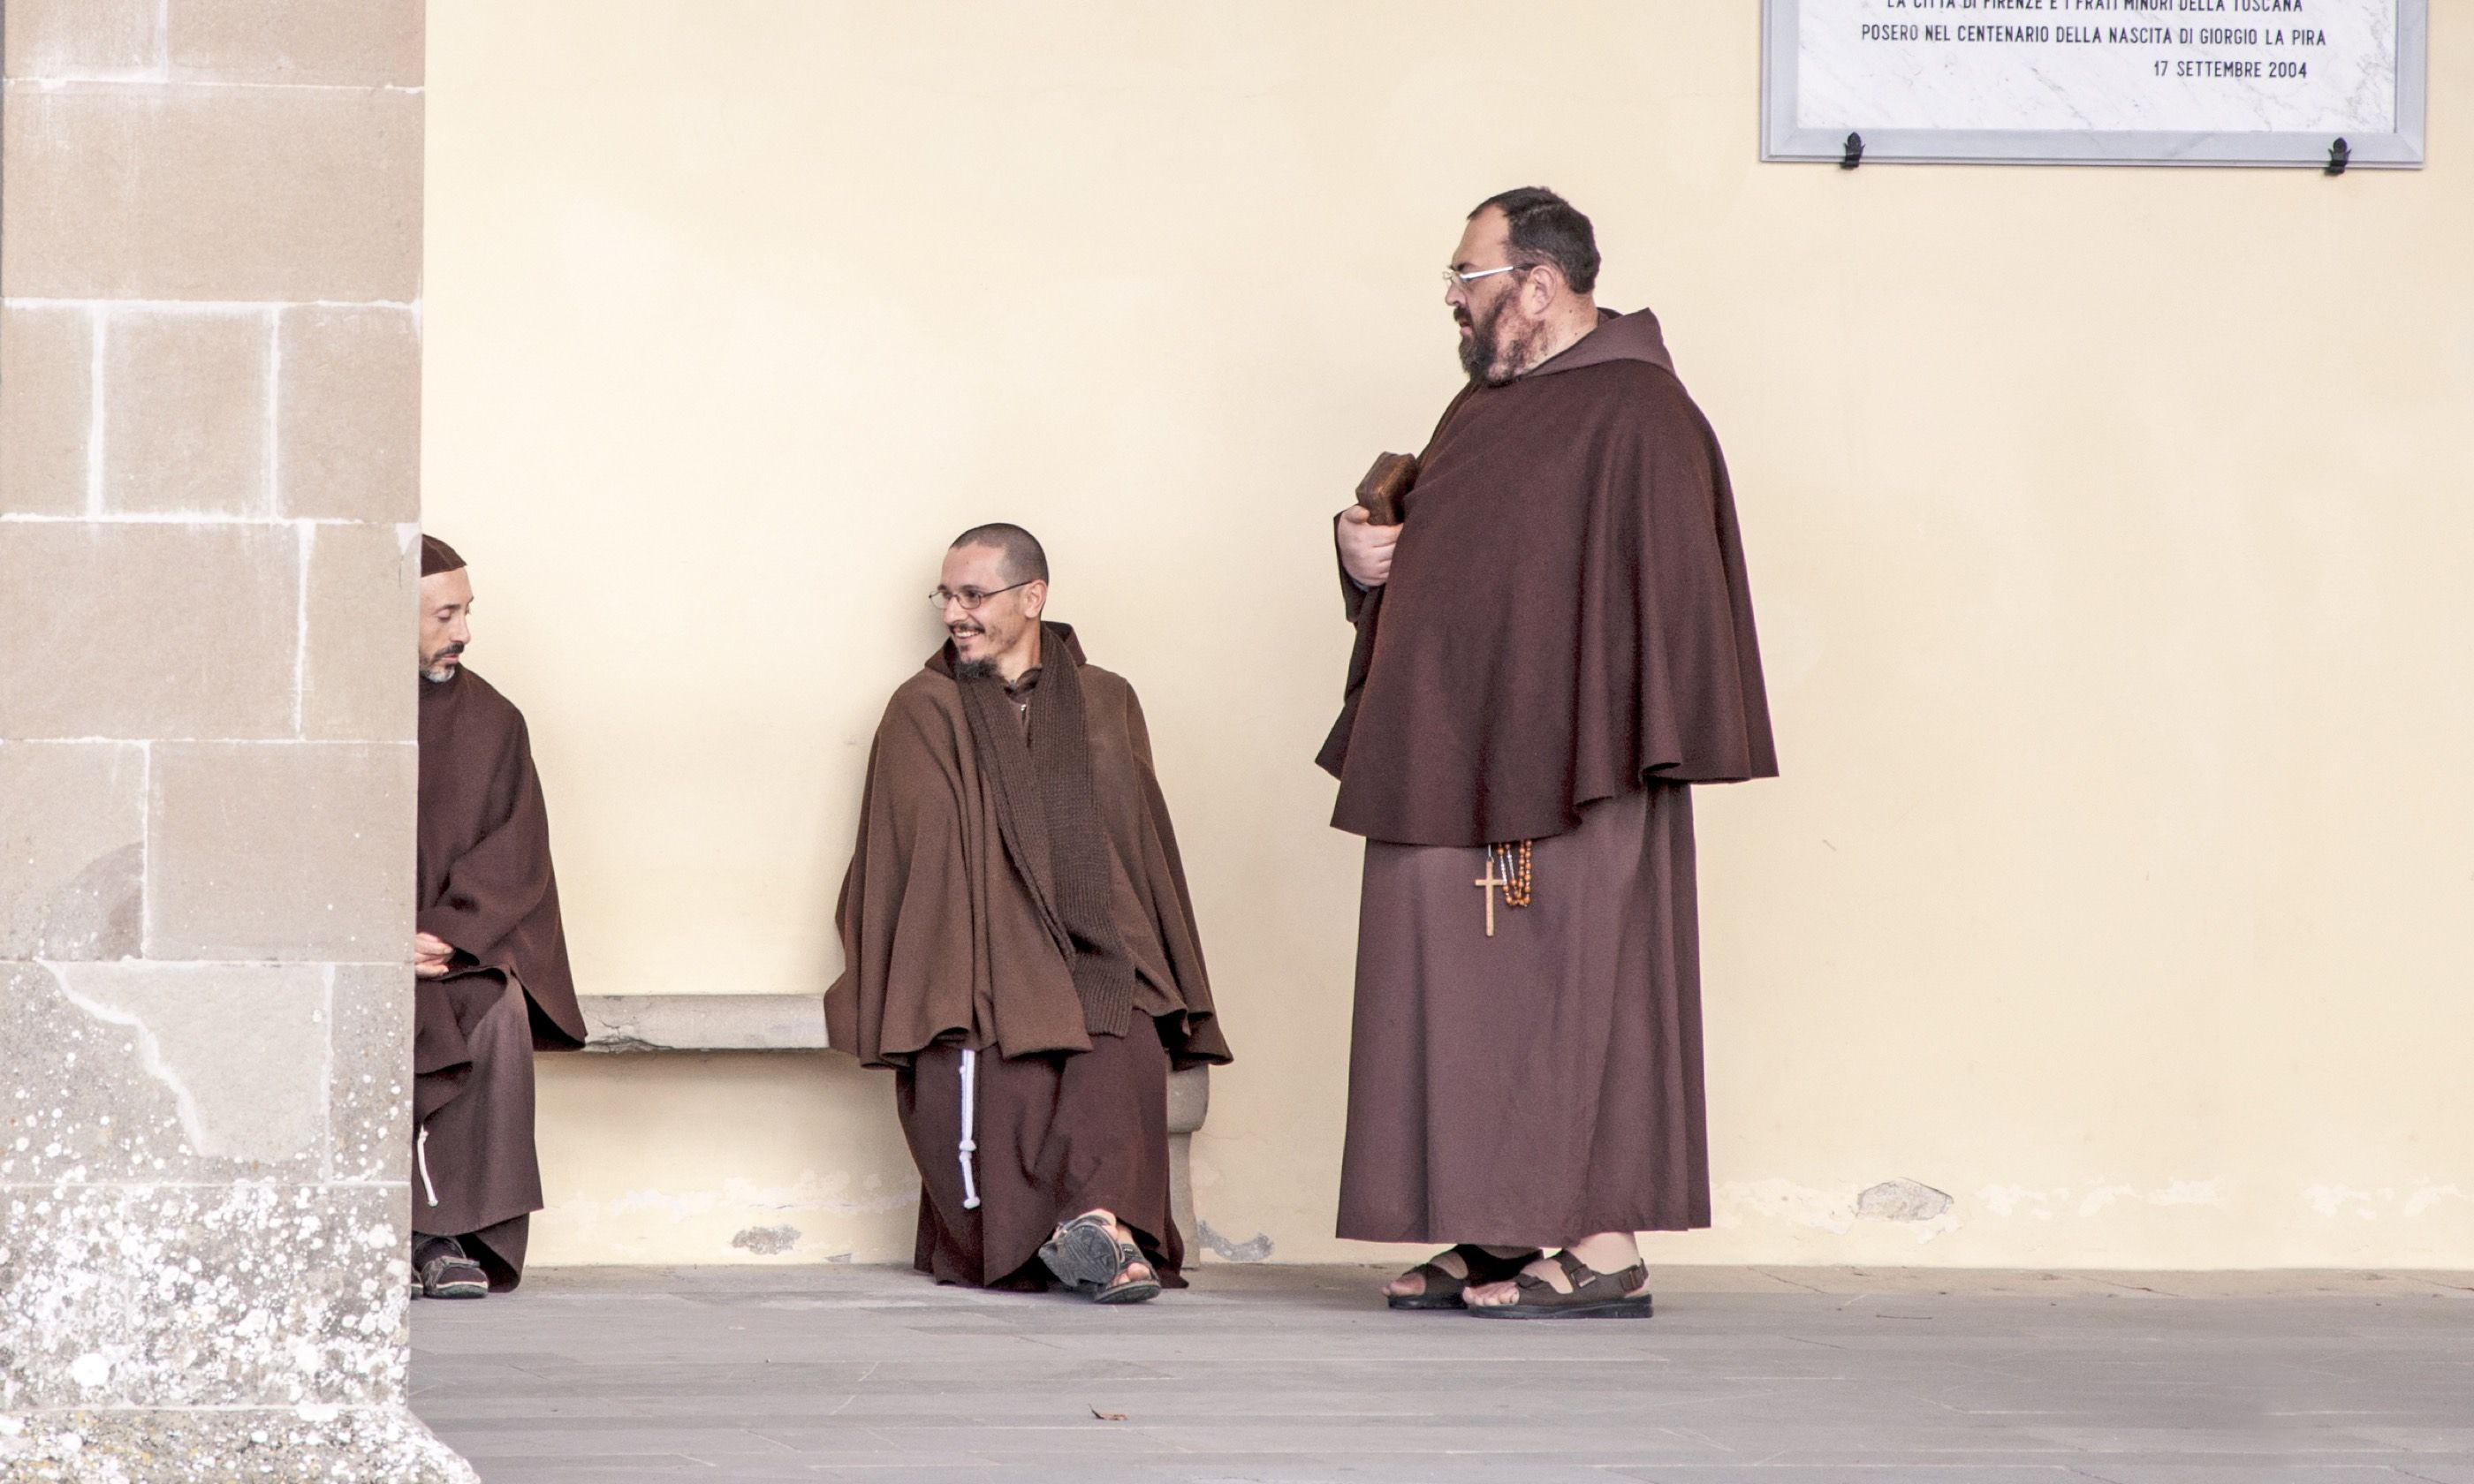 Franciscan friars in Italy (Dreamstime)